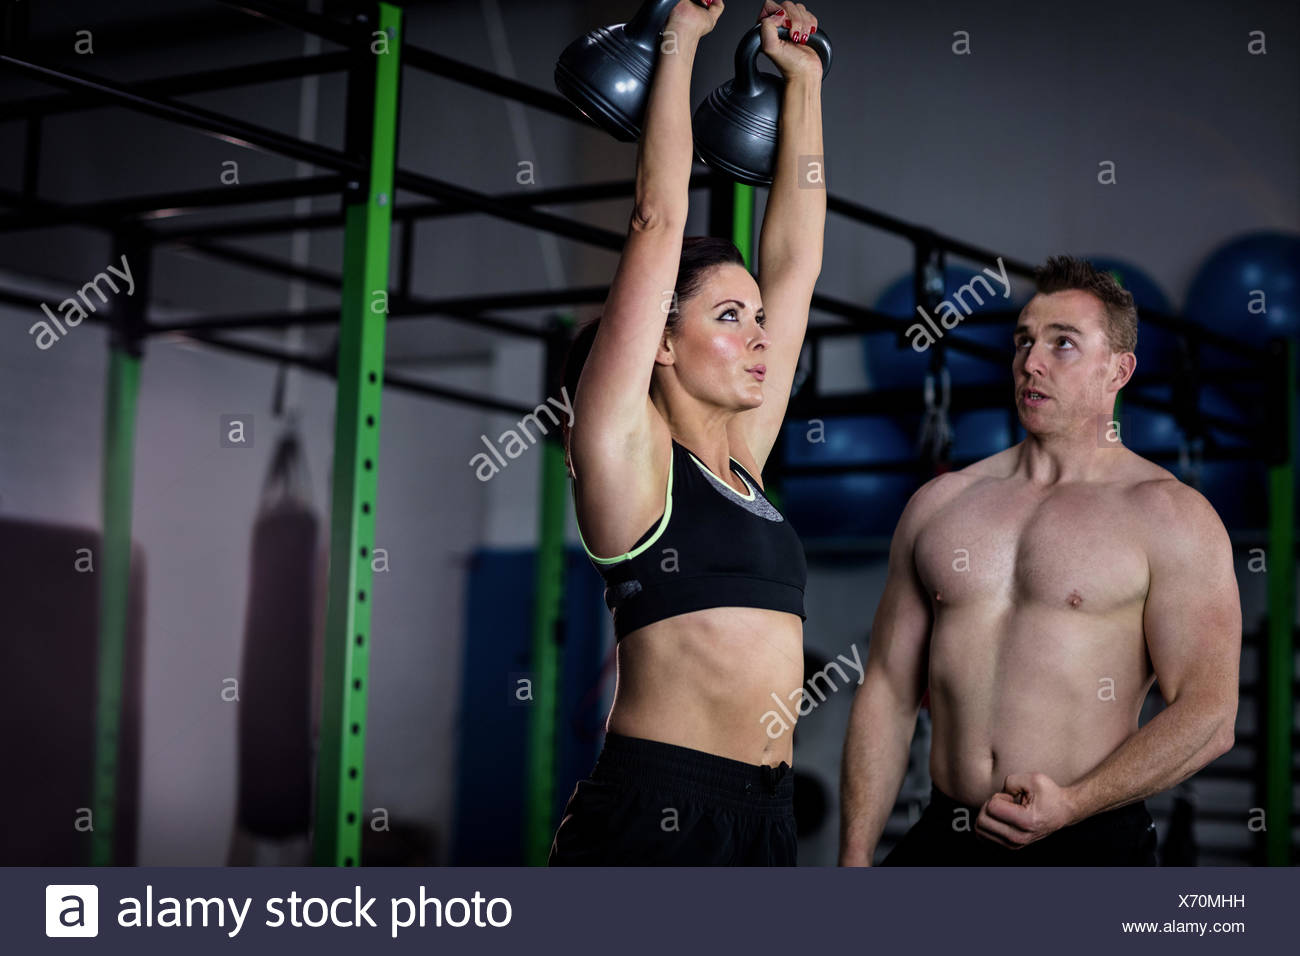 Trainer assisting a woman while exercising with kettlebell - Stock Image